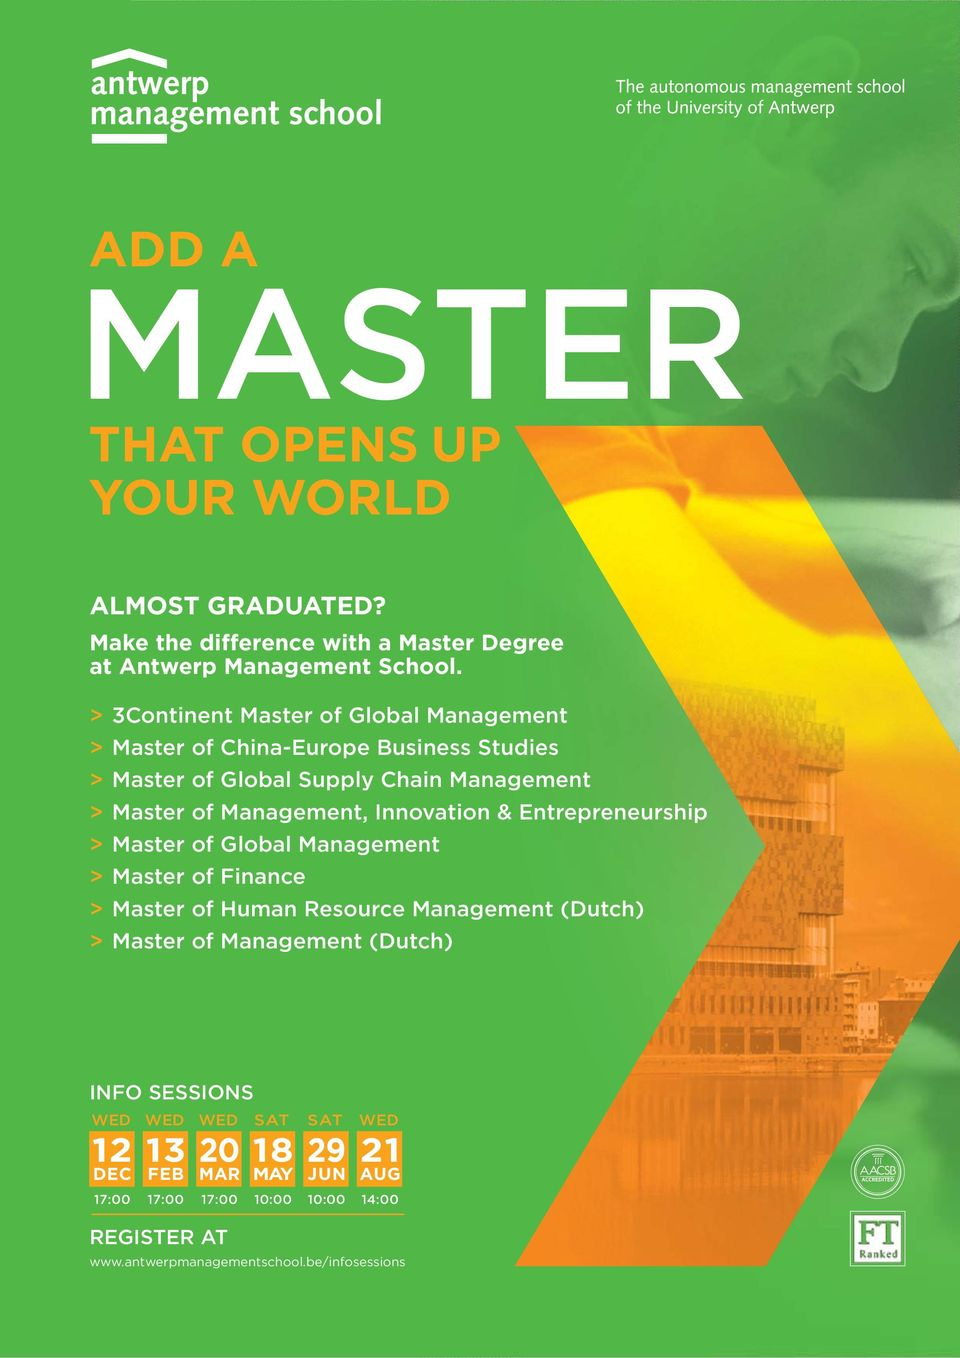 Innovation & Entrepreneurship > Master of Global Management > Master of Finance > Master of Human Resource Management (Dutch) > Master of Management